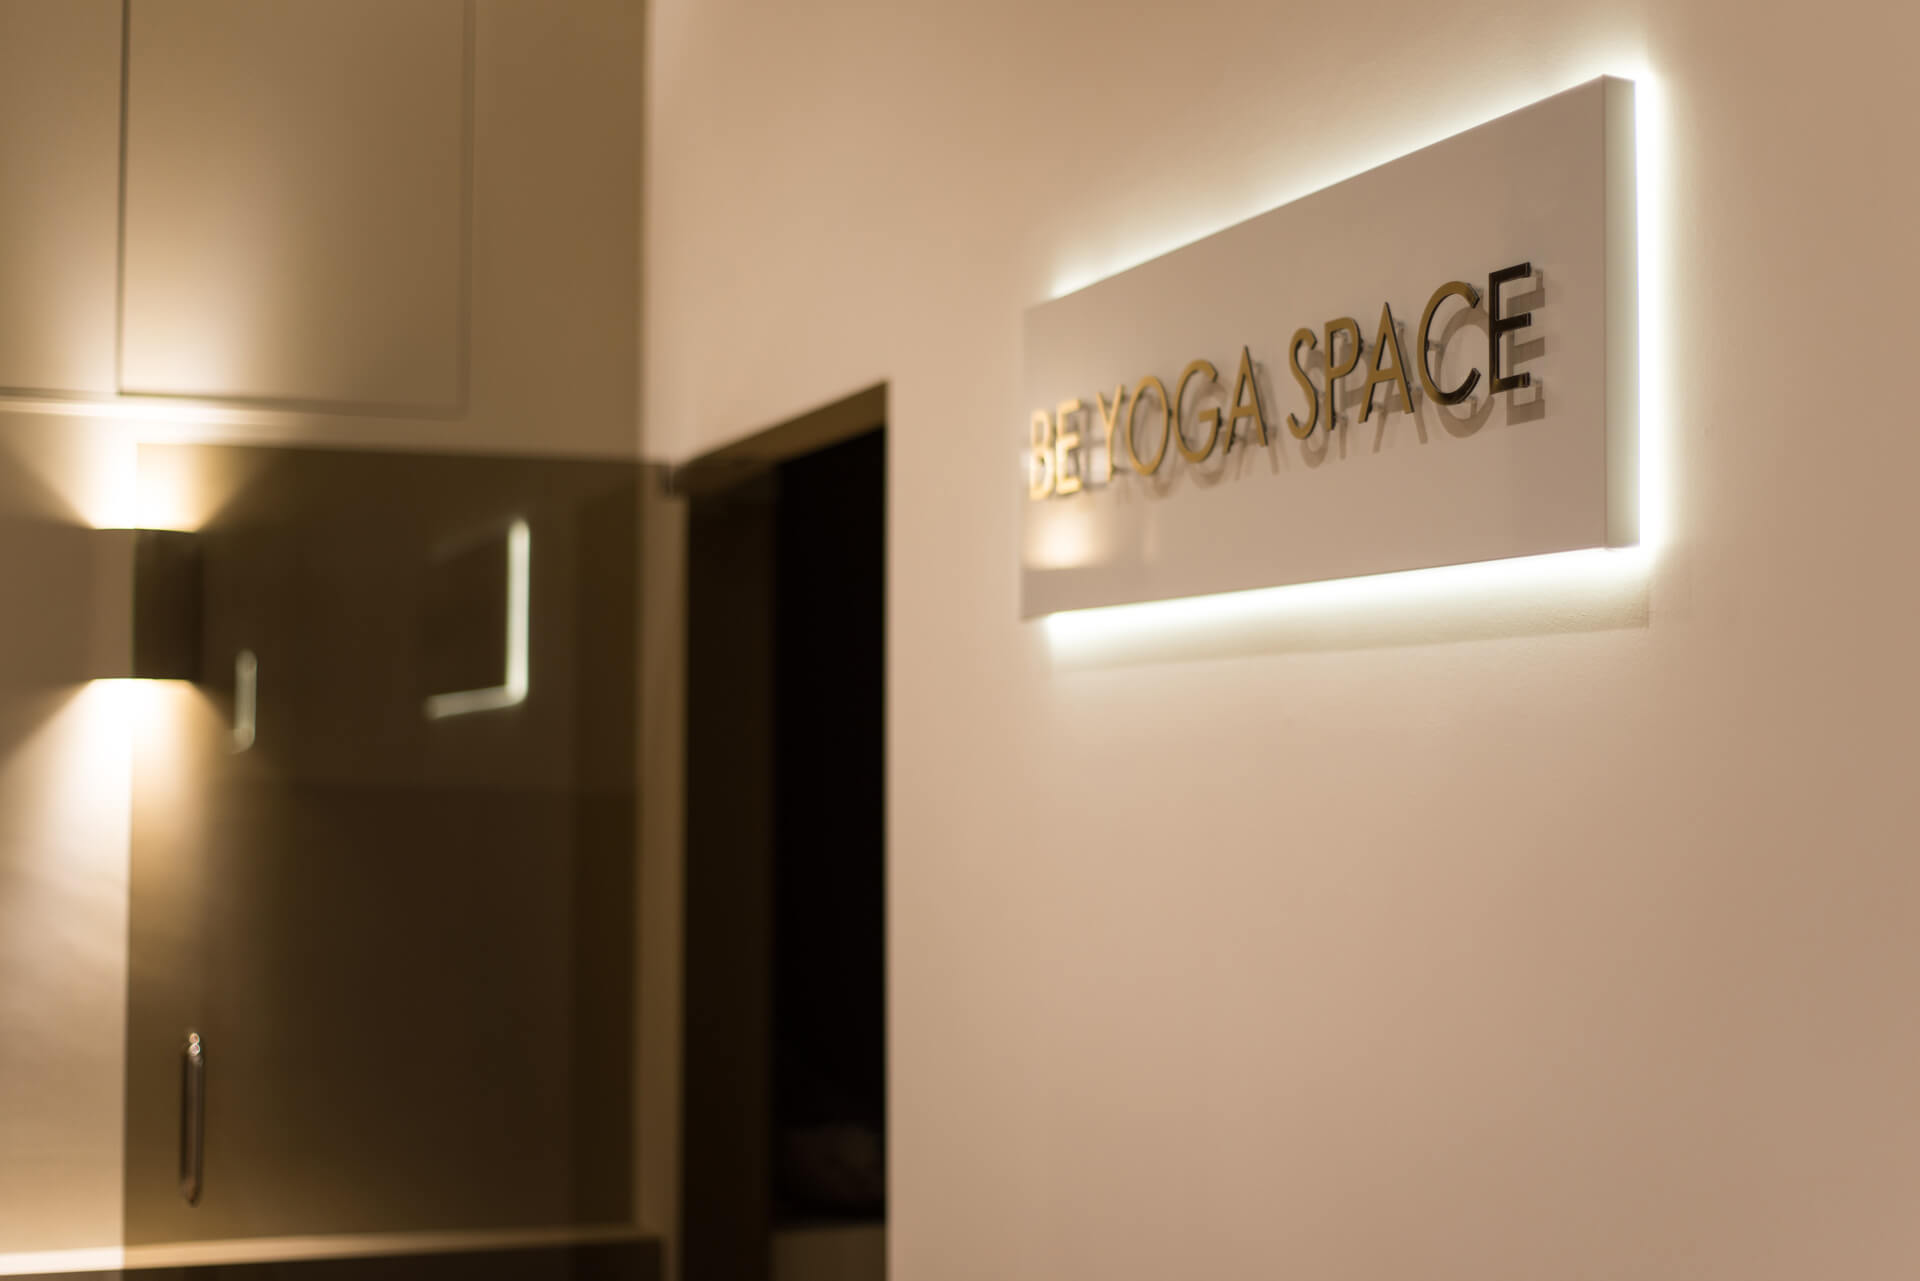 Be Yoga Space sign and entrance